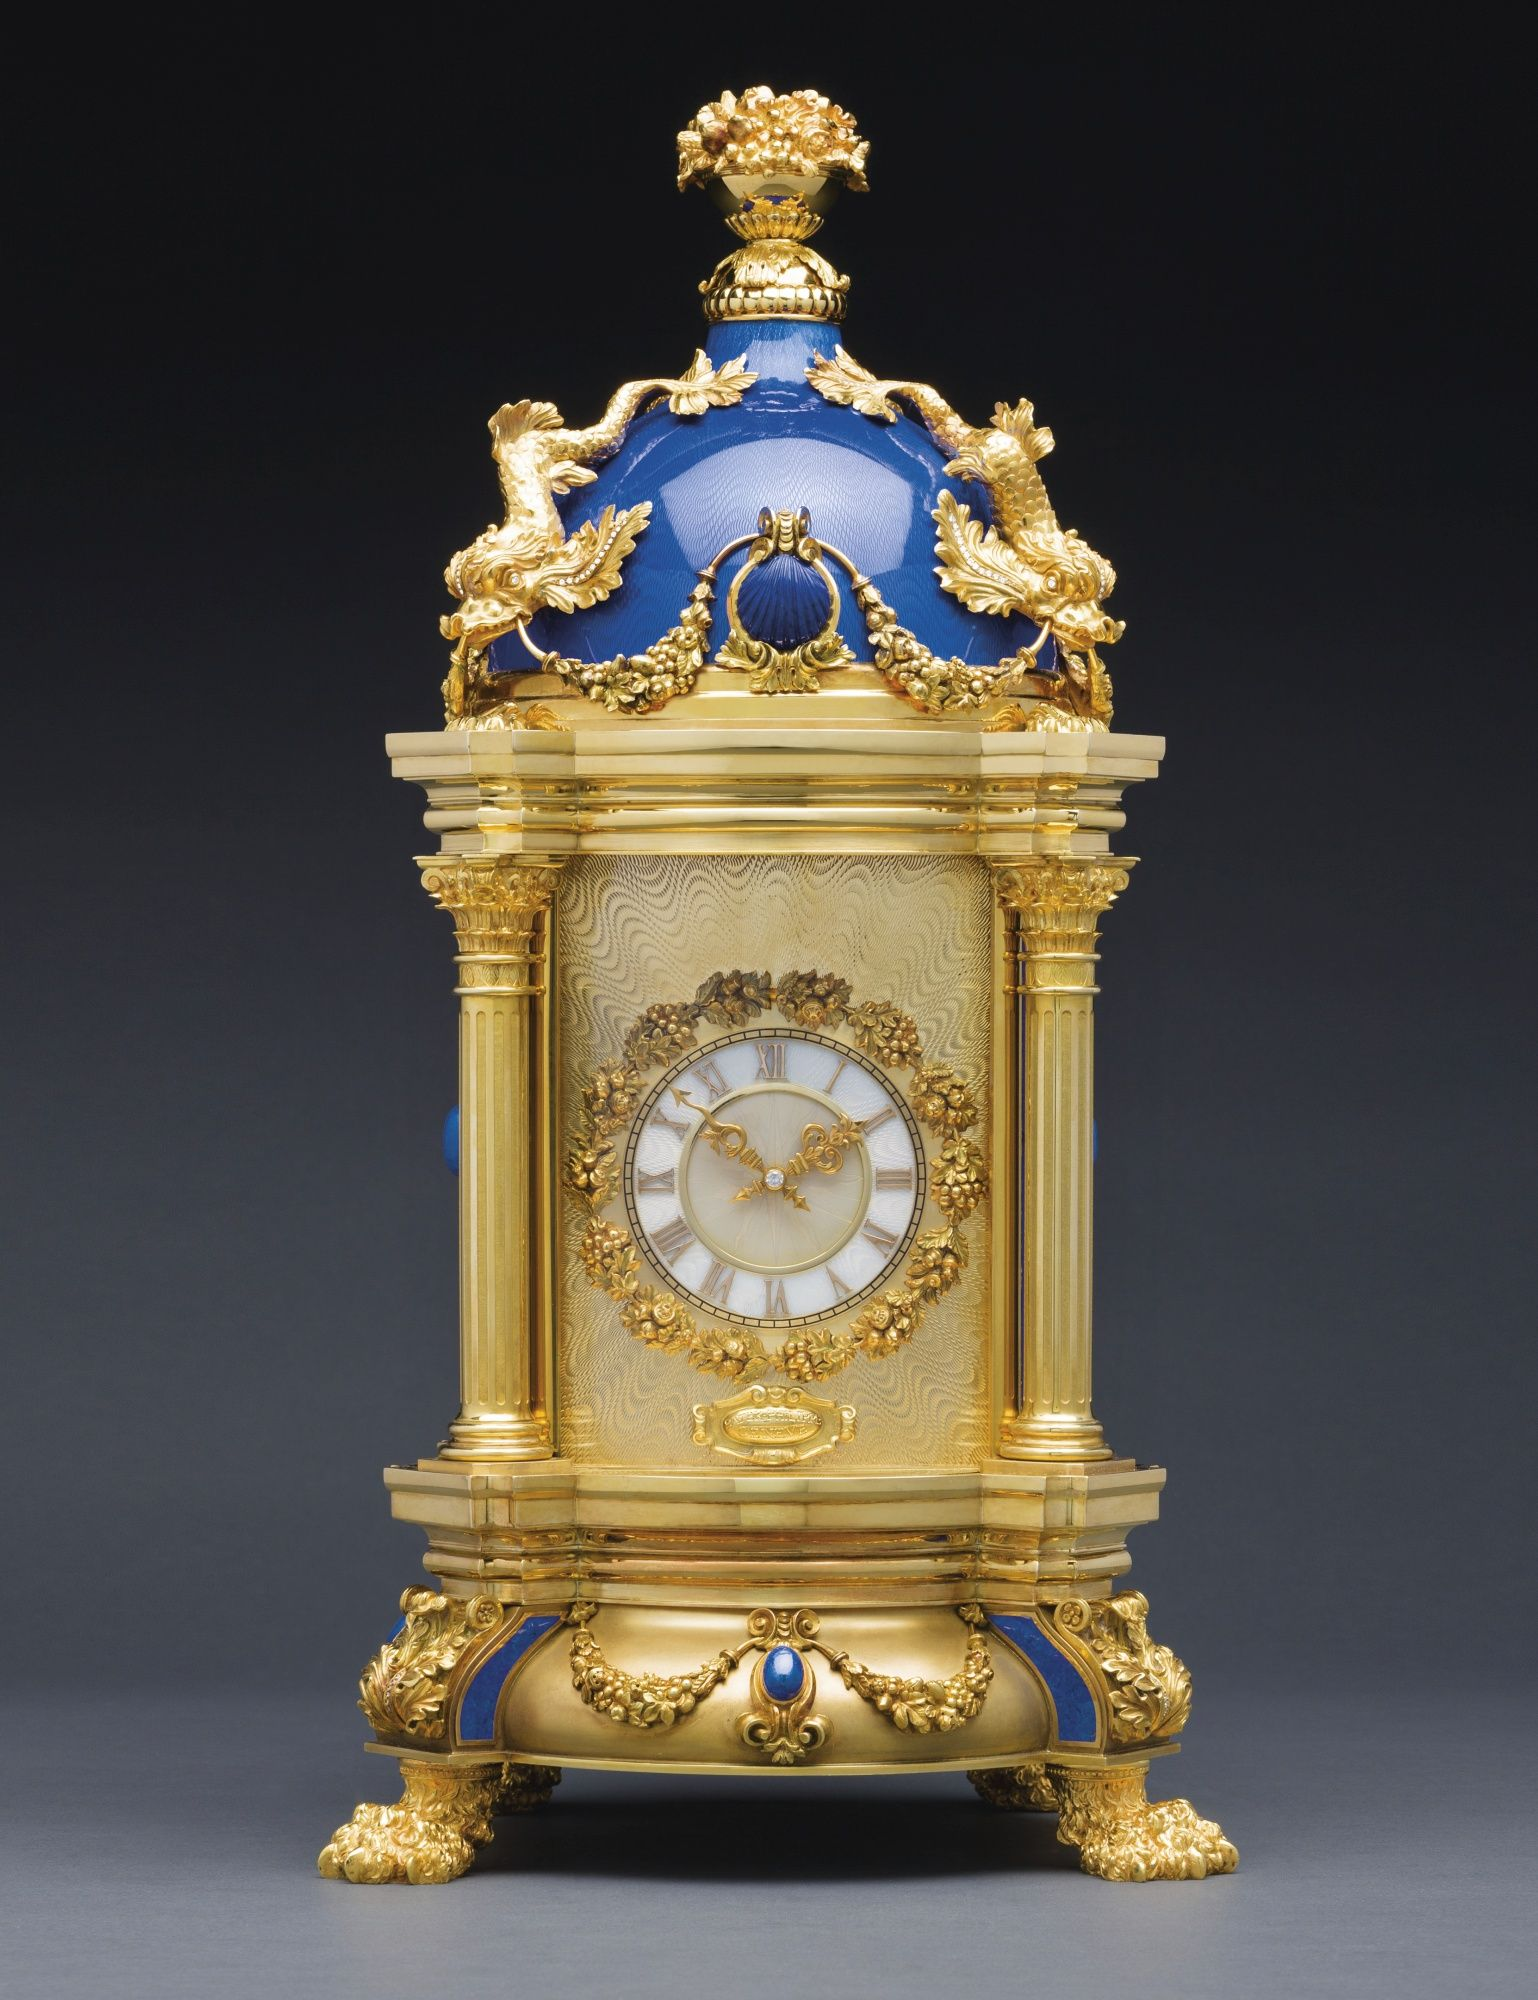 """PATEK PHILIPPE """"THE ROYAL BLUE - MASTERPIECE DOME CLOCK"""" AN EXTRAORDINARY AND MAJESTIC BAROQUE STYLE YELLOW GOLD, SILVER, DIAMOND, LAPIS LAZULI AND TRANSLUCENT ROYAL BLUE ENAMEL EXHIBITION QUALITY DOME CLOCK MADE IN 1980 REF 1191 MVT 11534 CASE 1803537"""